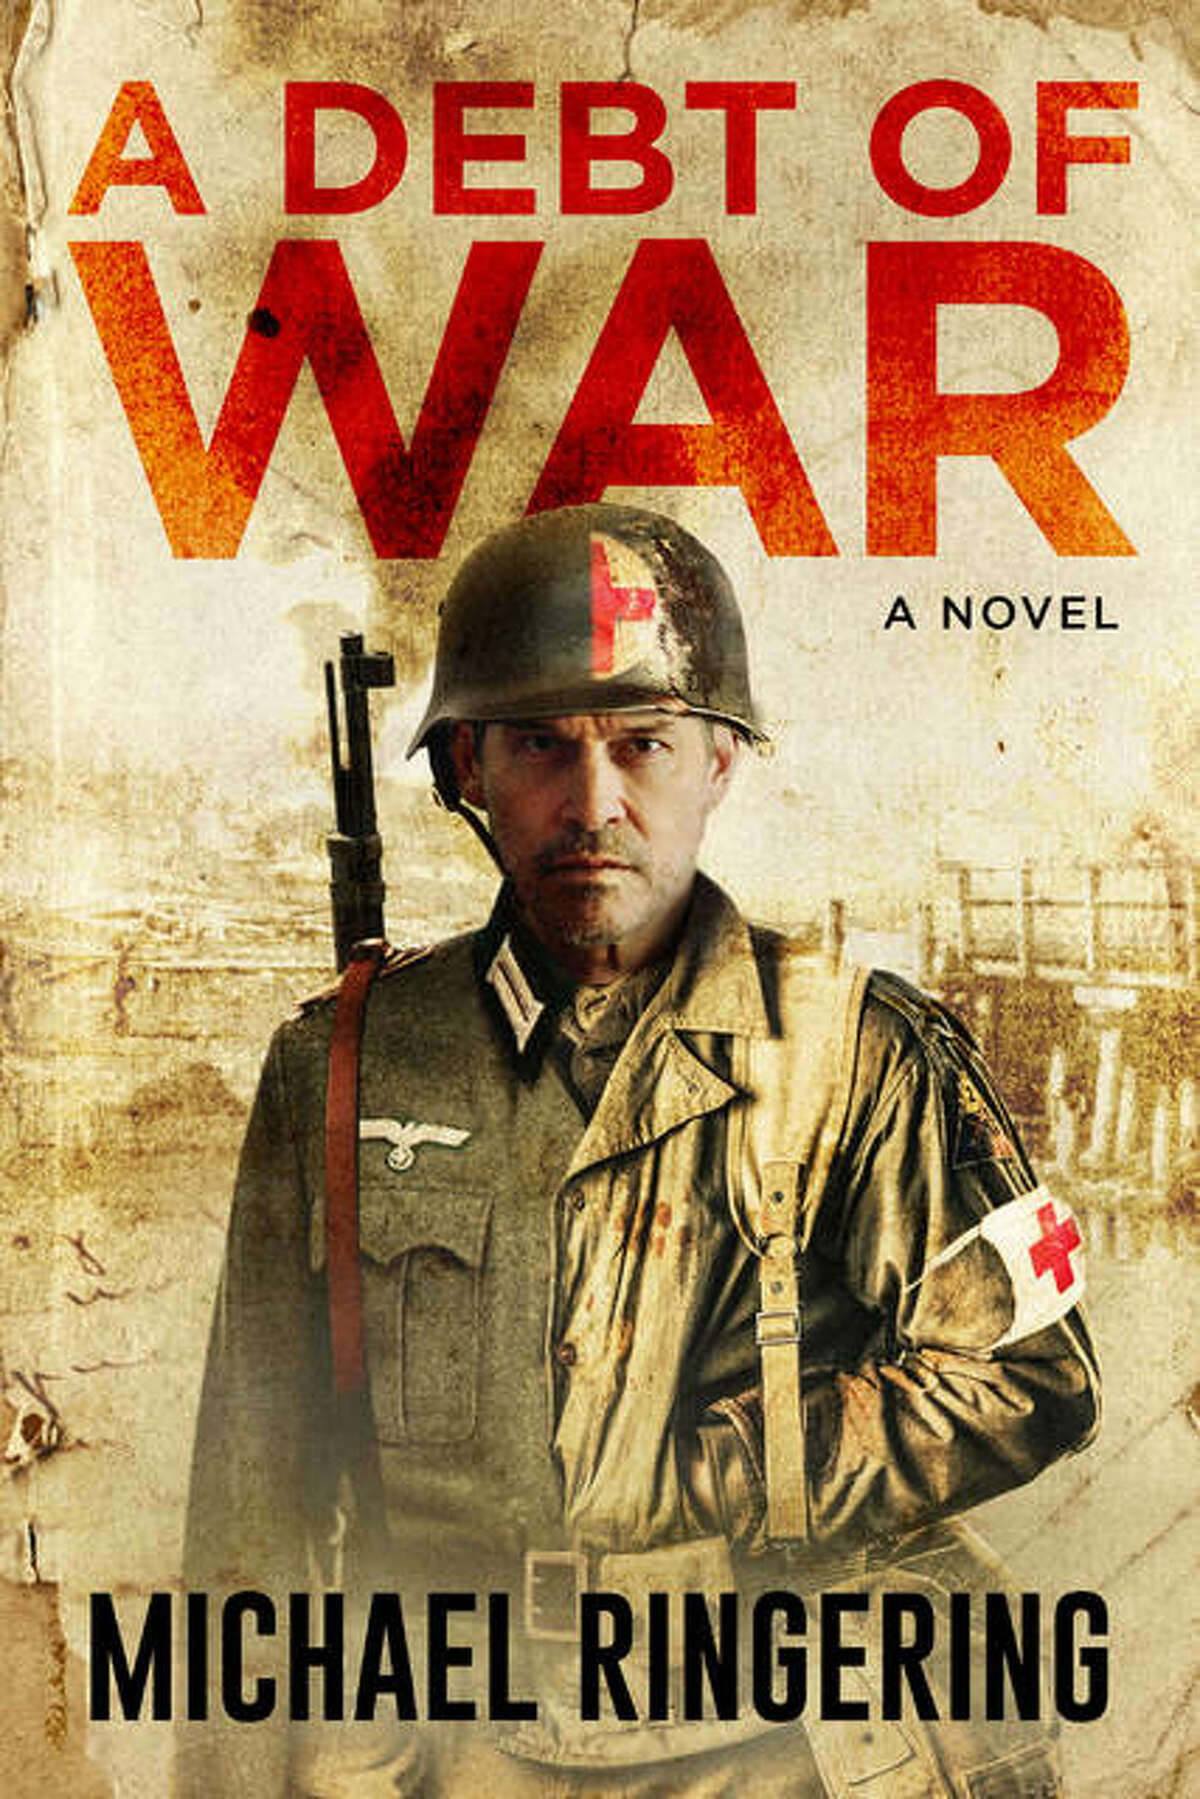 """East Alton native Michael Ringering has released his new novel, """"A Debt of War,"""" a work of historical fiction involving World War II that revolves around a dying wish and a mysterious manuscript that bring to light a soldier's undying commitment to pay a debt owed."""